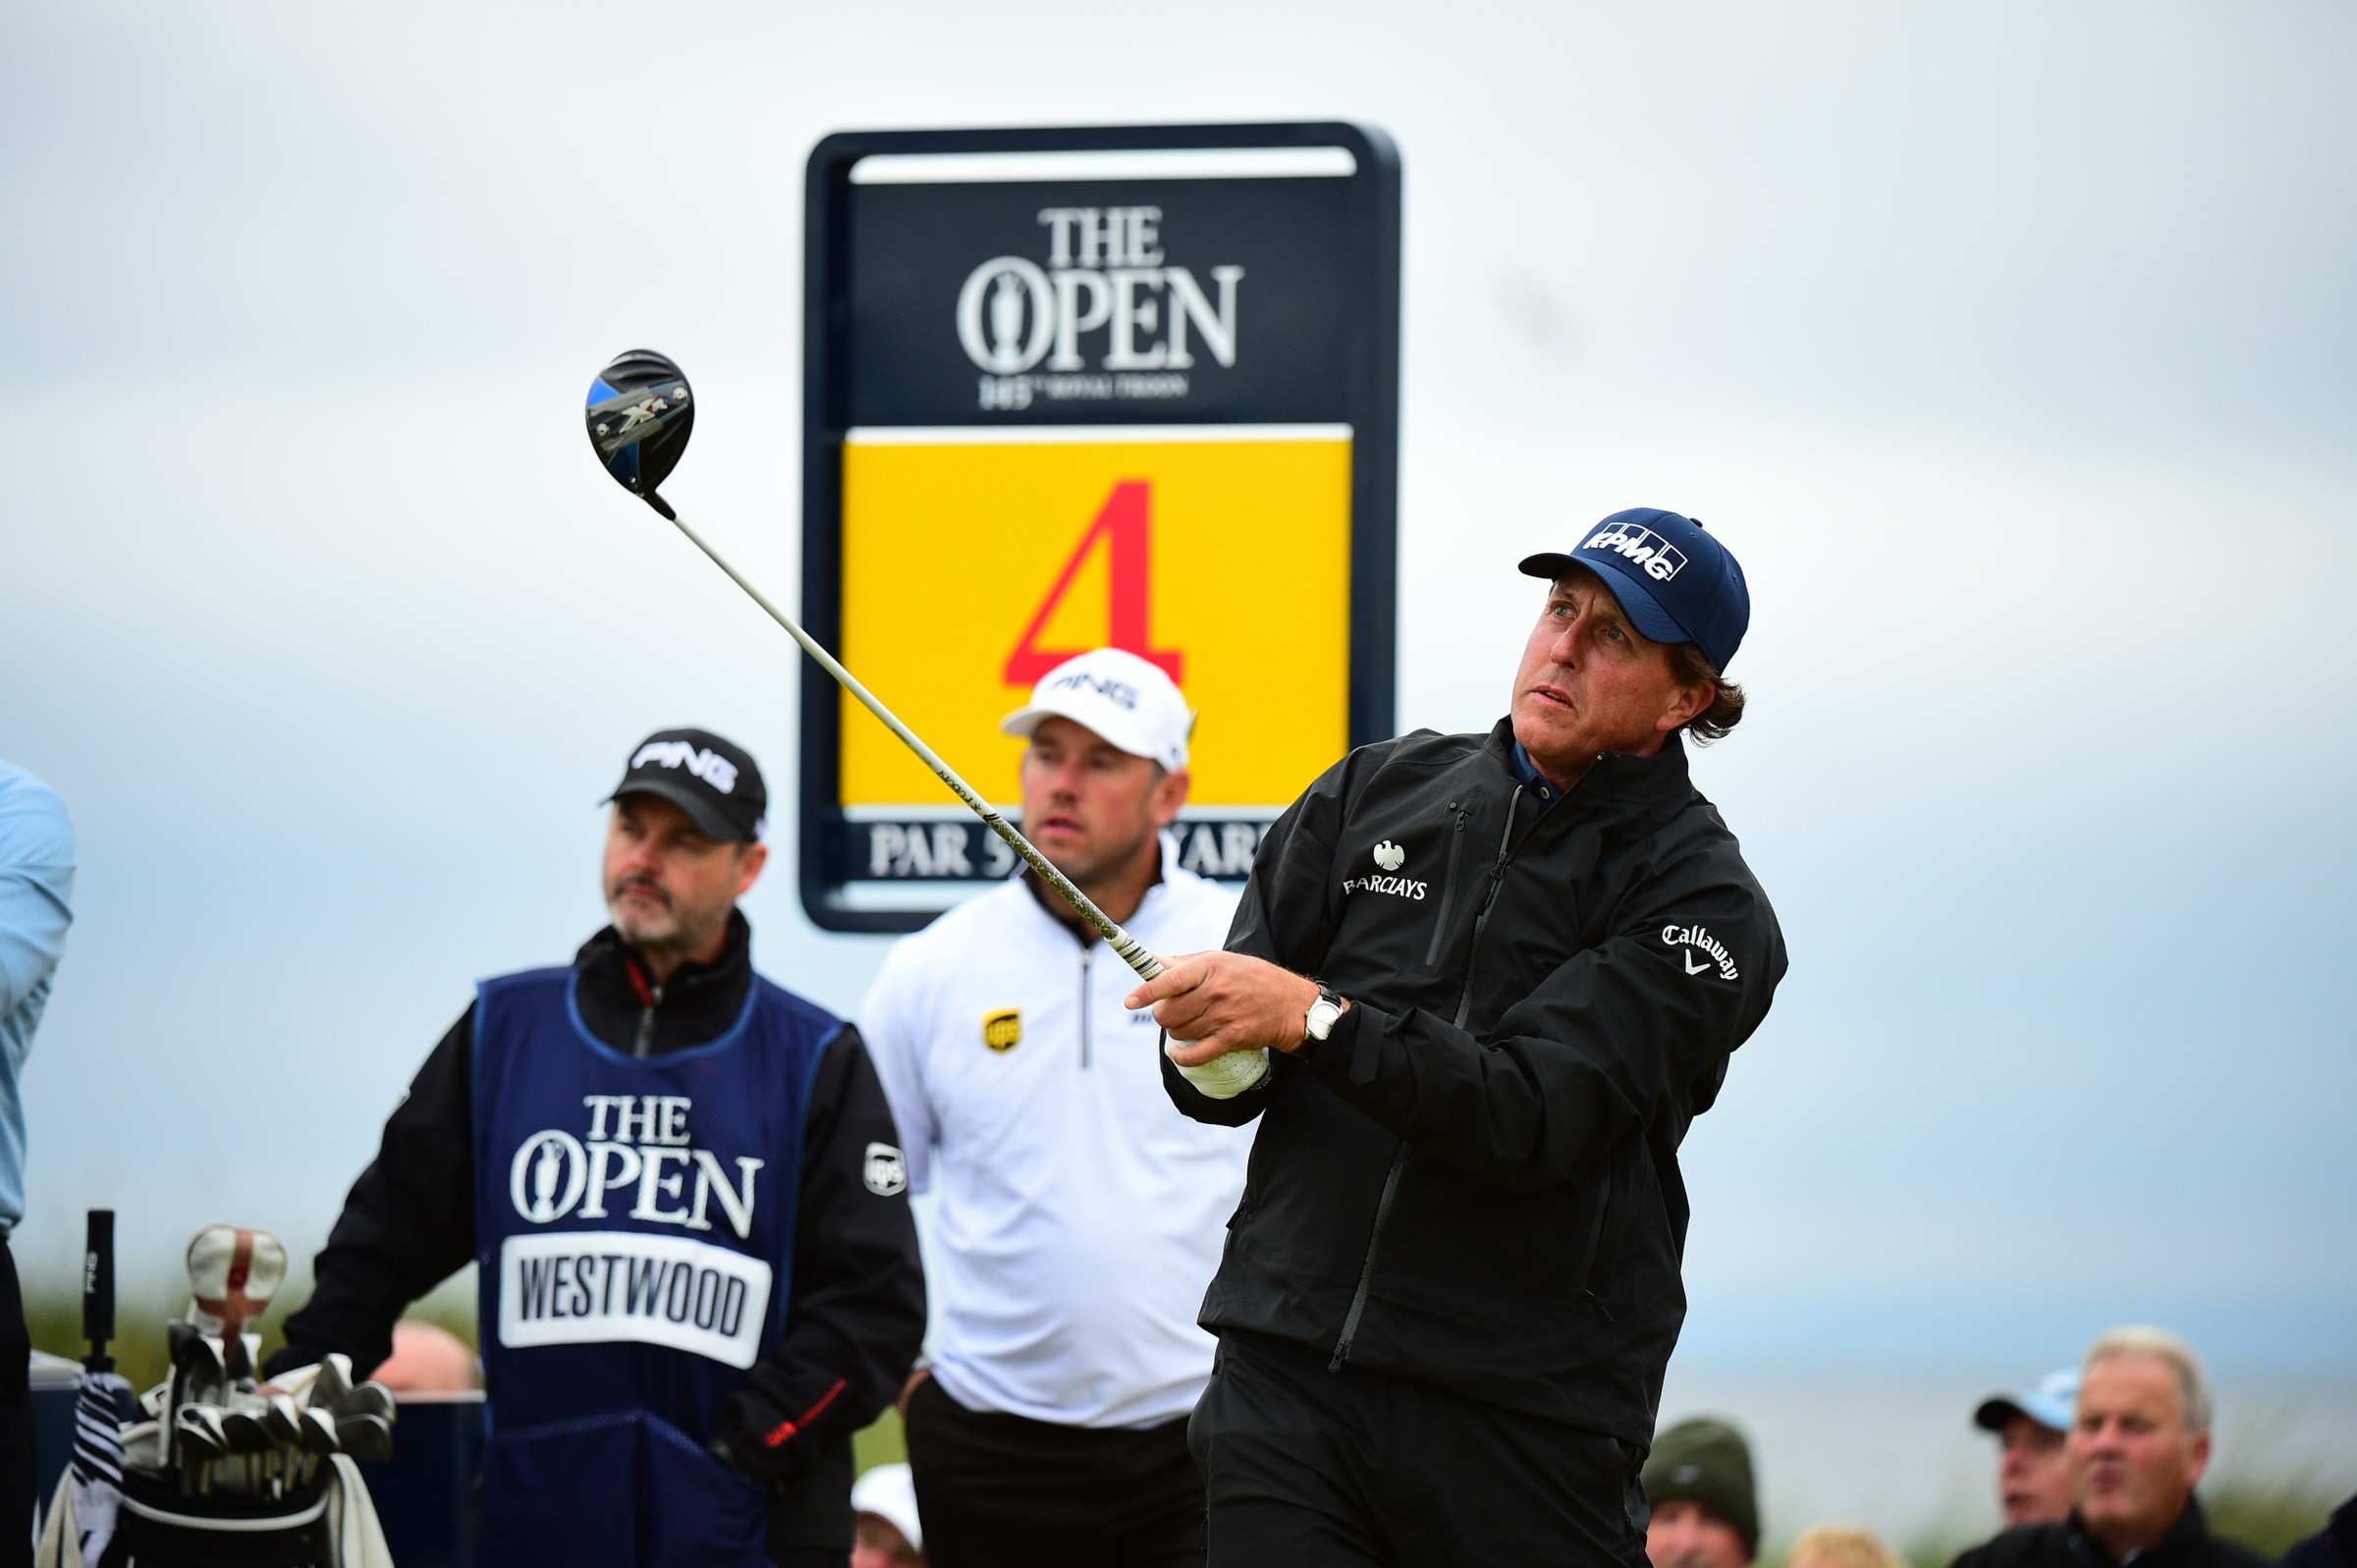 Phil Mickelson tees off on the 4th hole during the second round of the British Open on Friday at Royal Troon. Mickelson holds the 36-hole lead as he eyes a sixth major title.